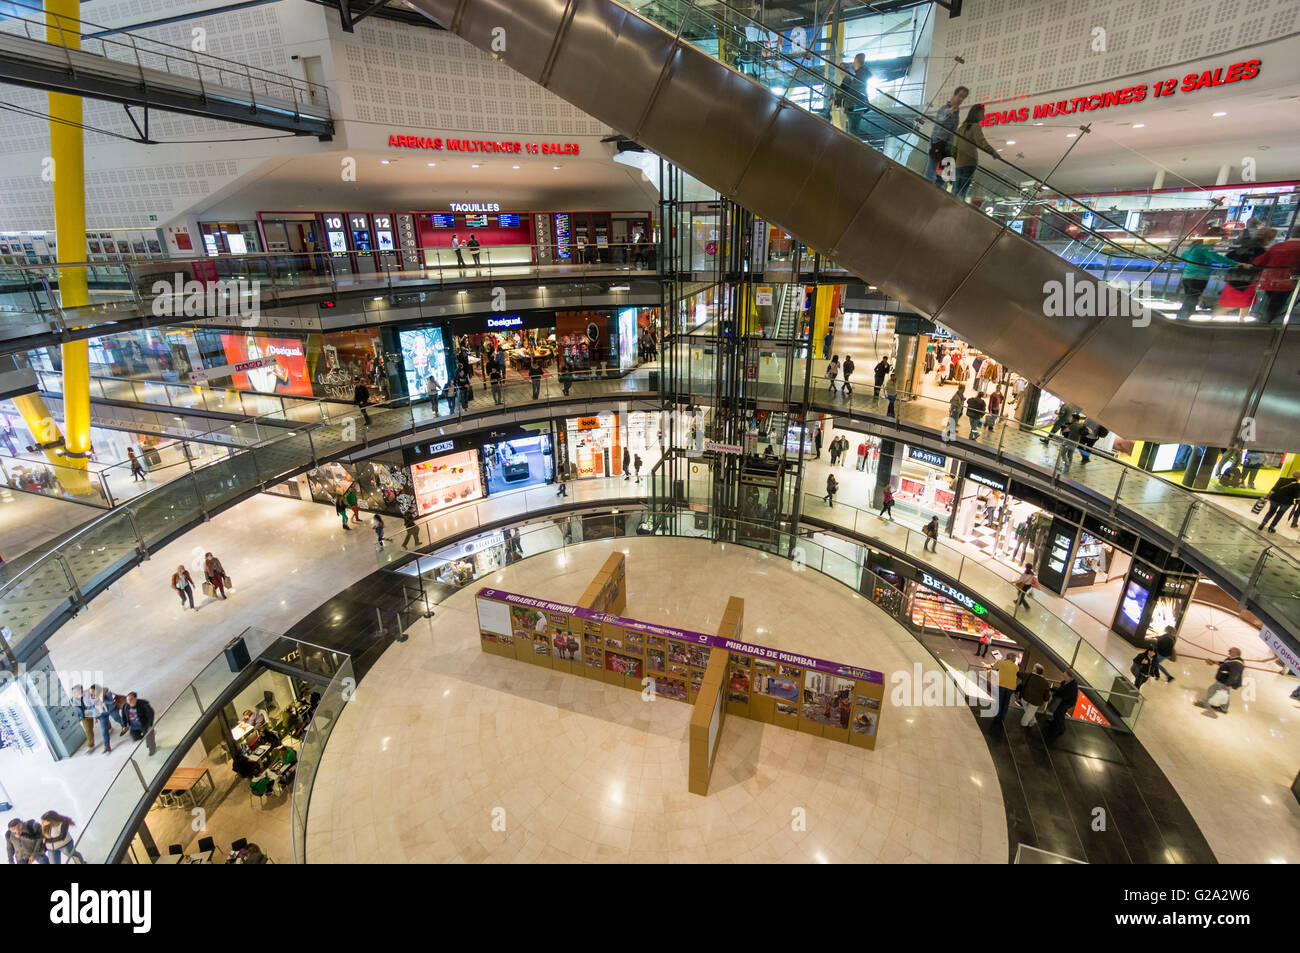 Mall Las Arenas Barcelona High Resolution Stock Photography And Images Alamy